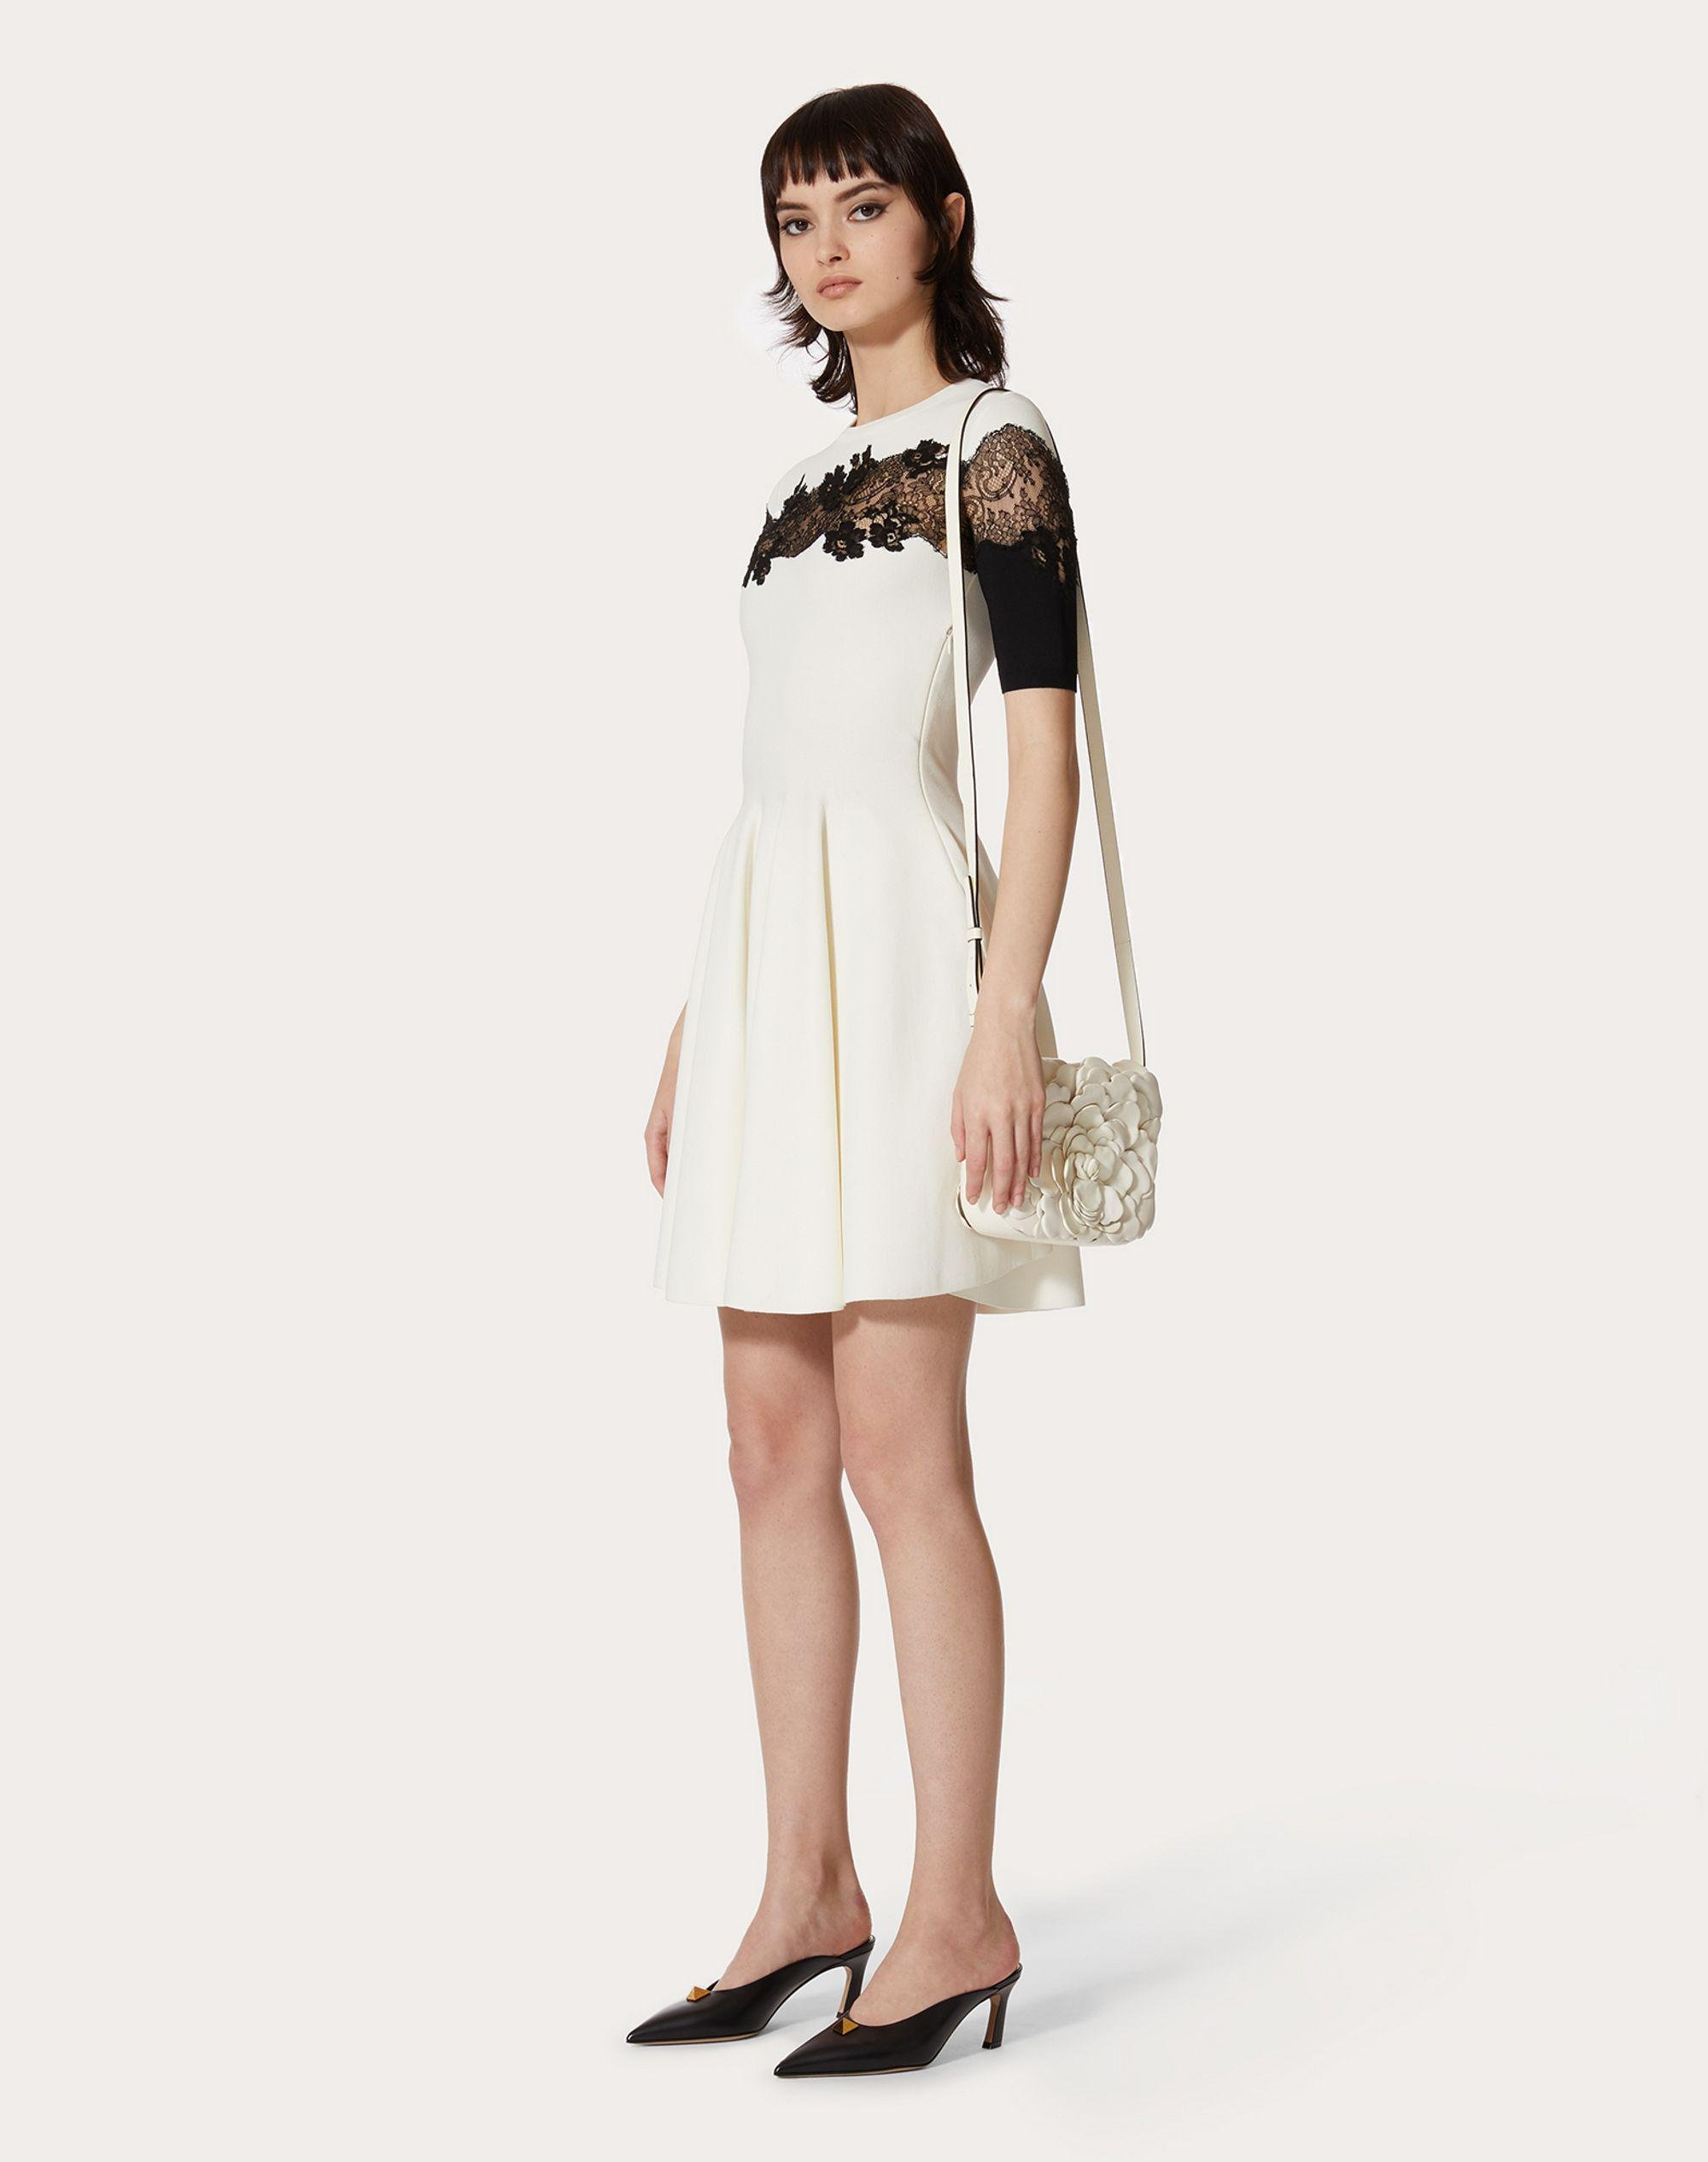 JERSEY DRESS IN STRETCHED VISCOSE AND LACE